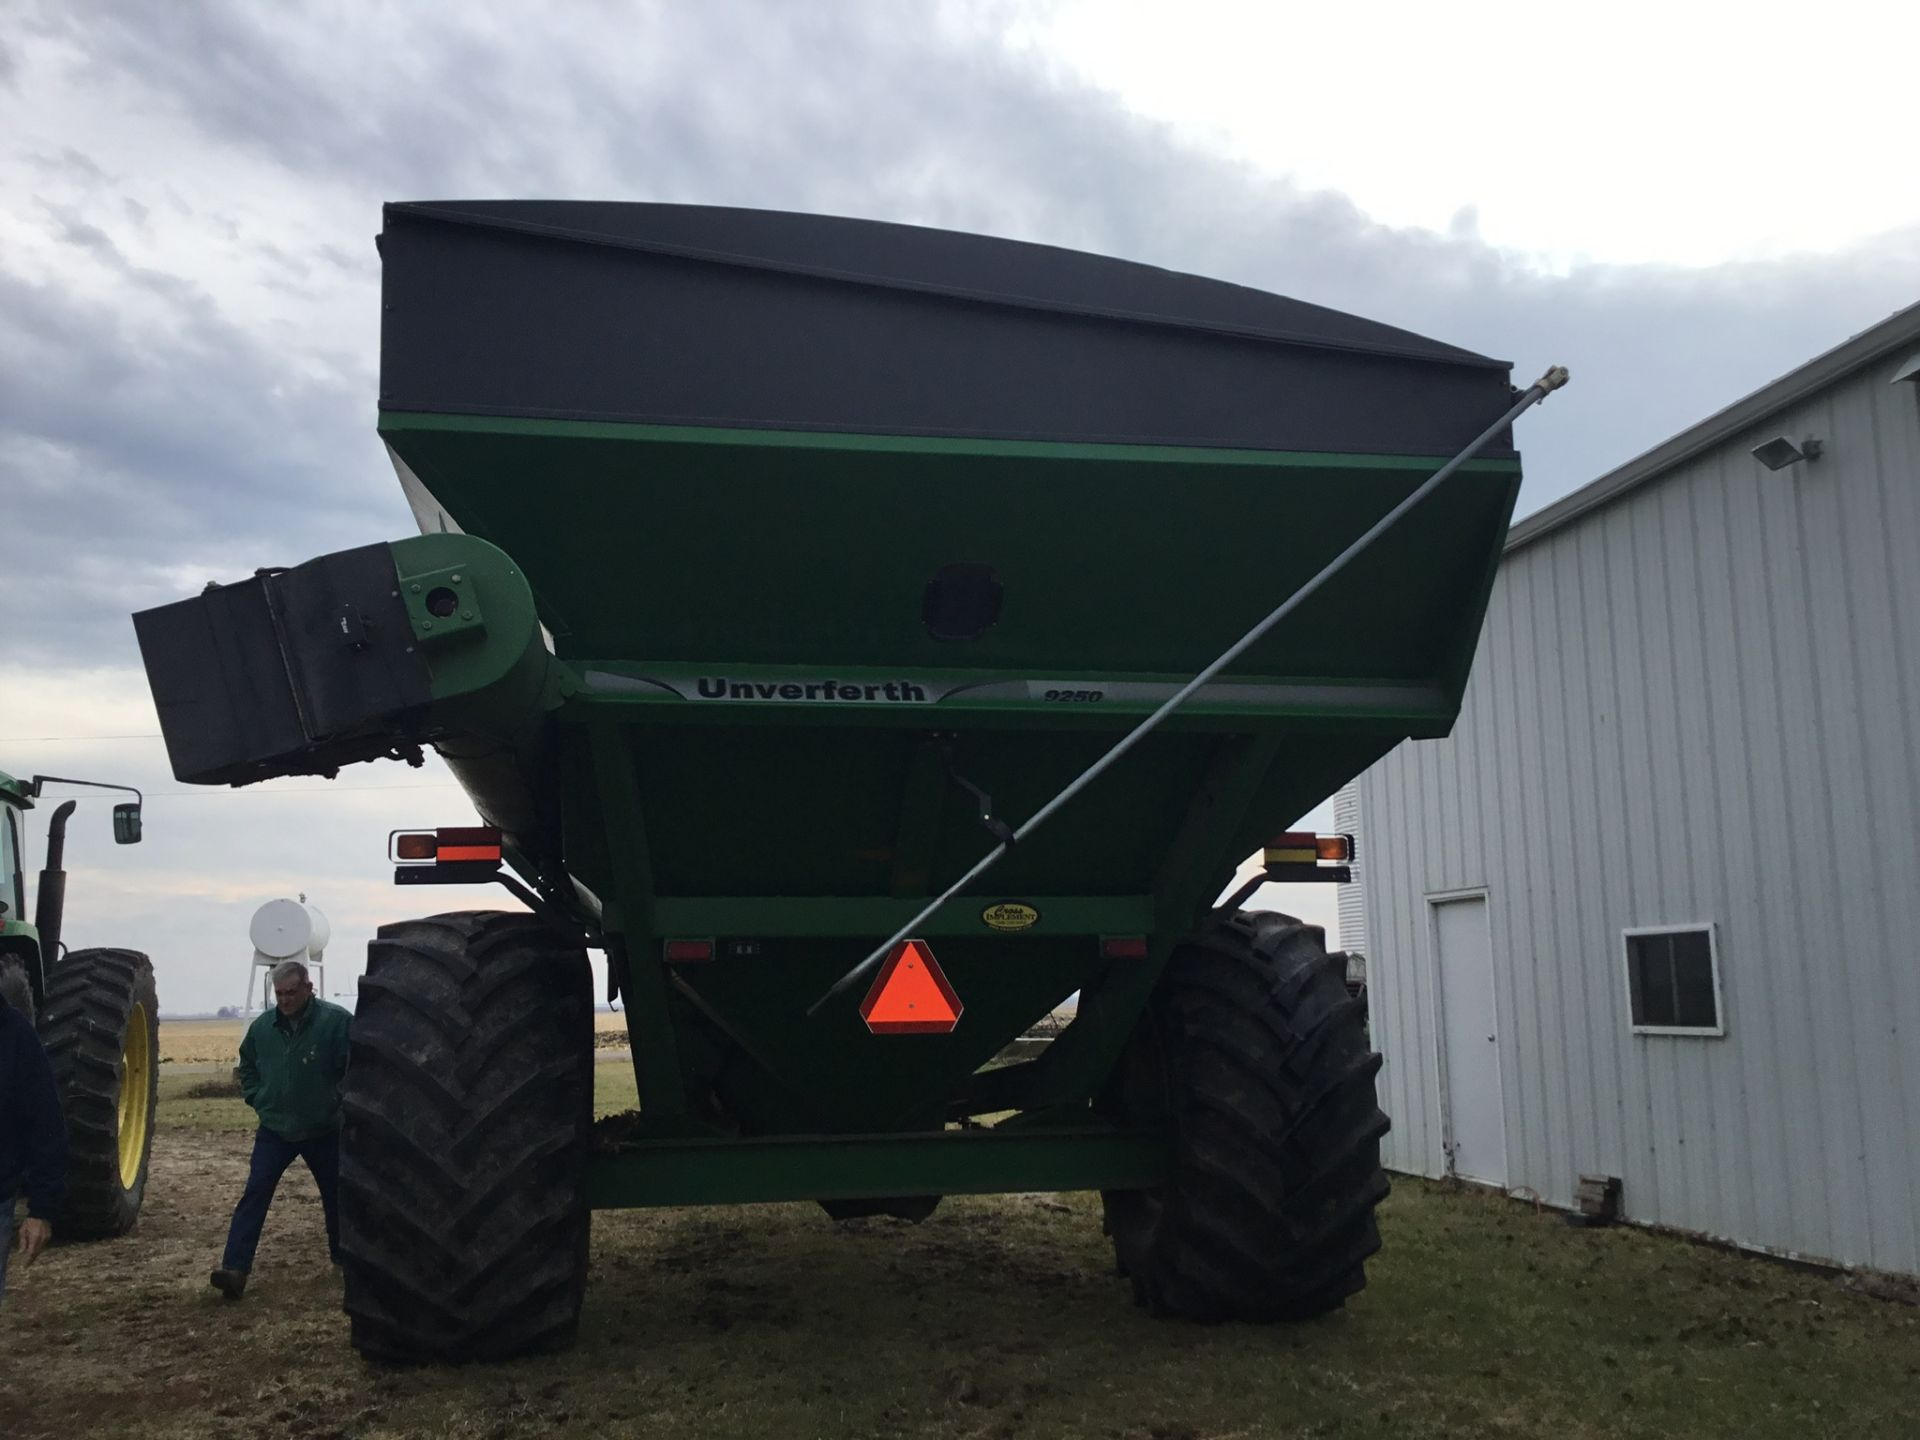 2009 Unverferth 9250 1,000 Bu. Auger Cart, Hydraulic Spout, 3 Cameras, Roll Tarp, New Augers, 900- - Image 6 of 15